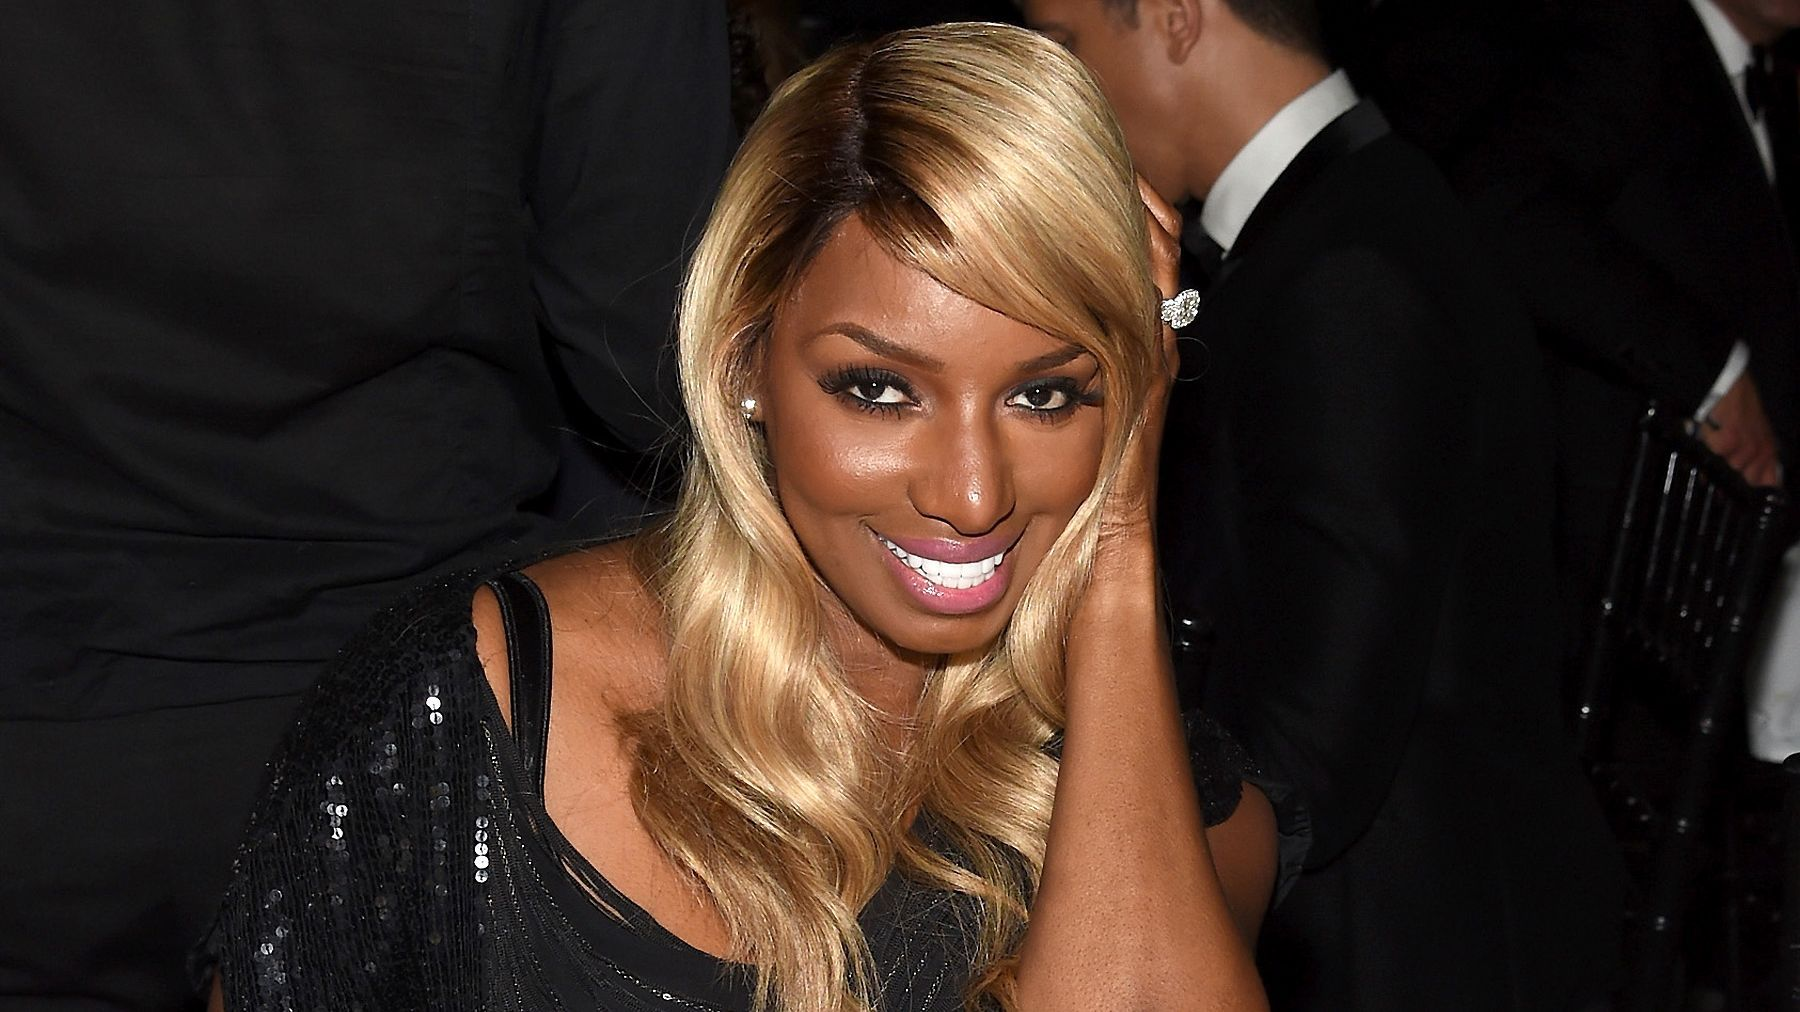 """nene-leakes-is-making-money-moves-in-2019-check-out-her-latest-photos"""